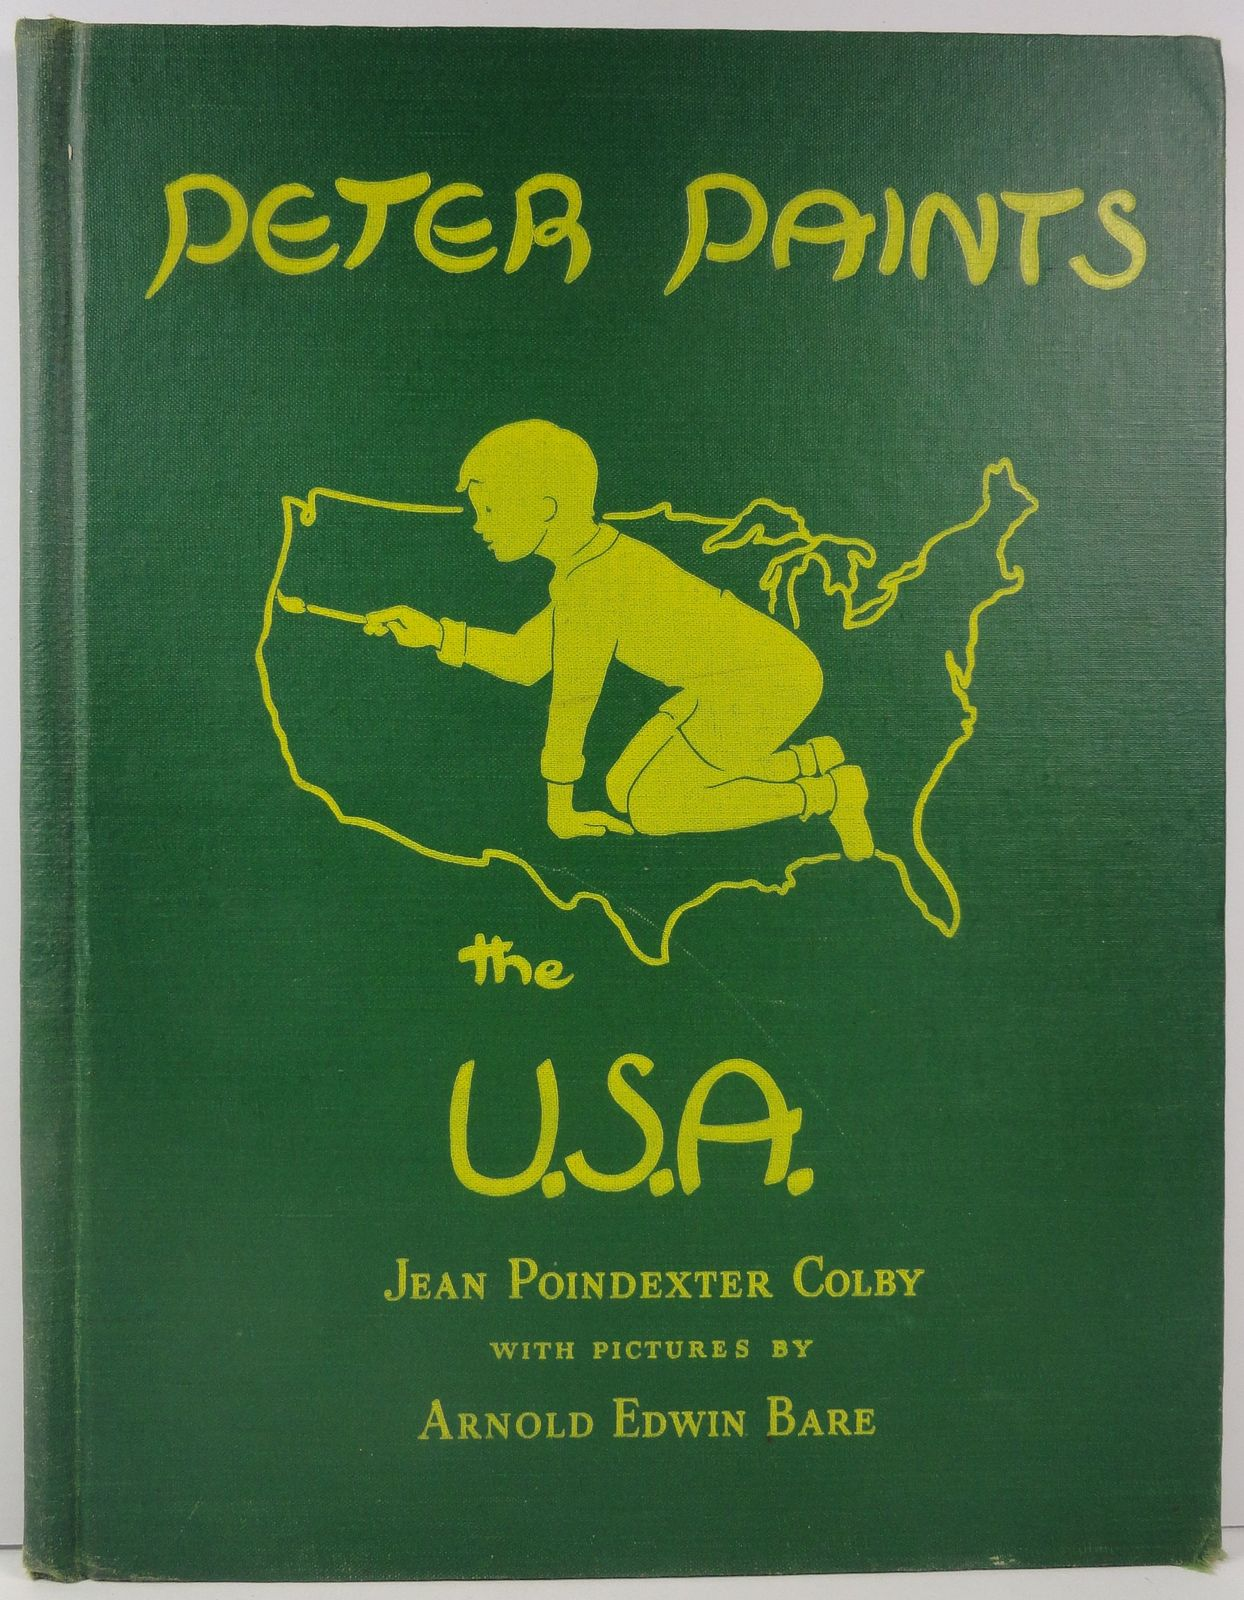 Primary image for Peter Paints the U.S.A. by Jean Poindexter Colby 1948